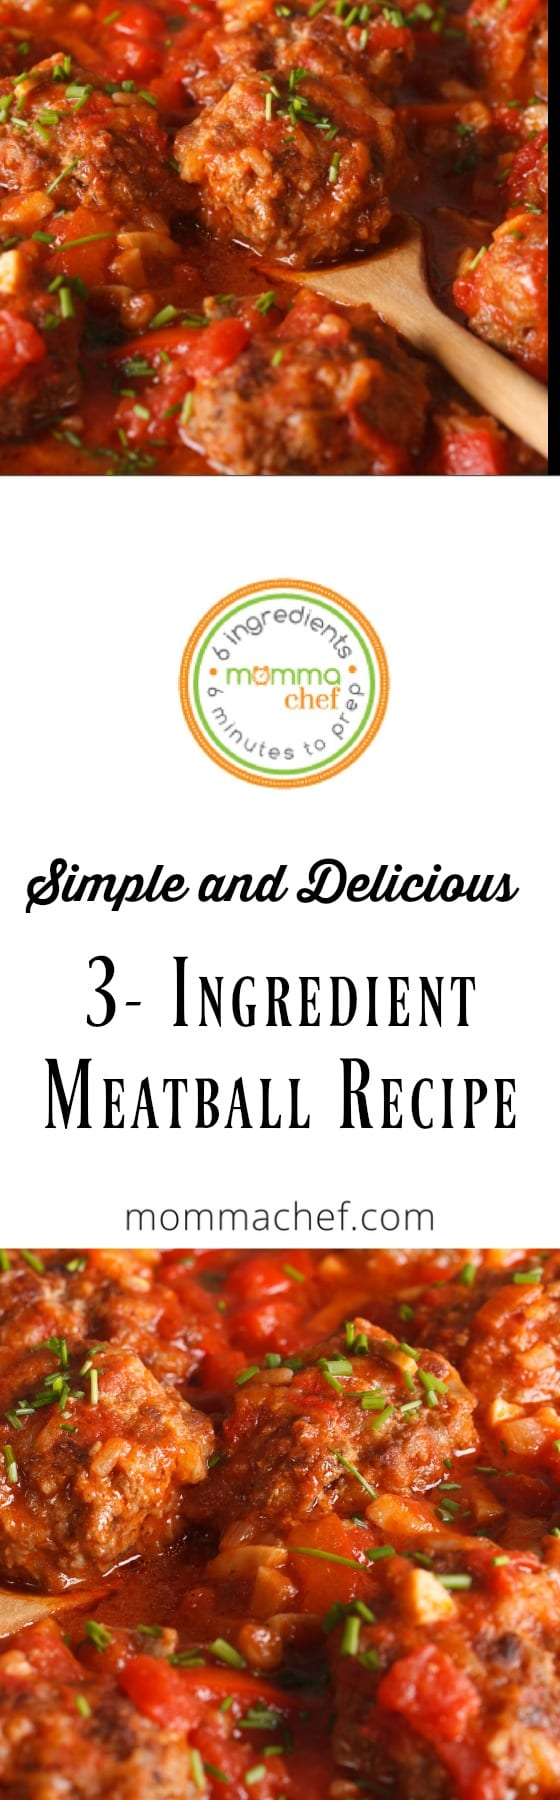 Quick and Easy 3 Ingredient Meatballs